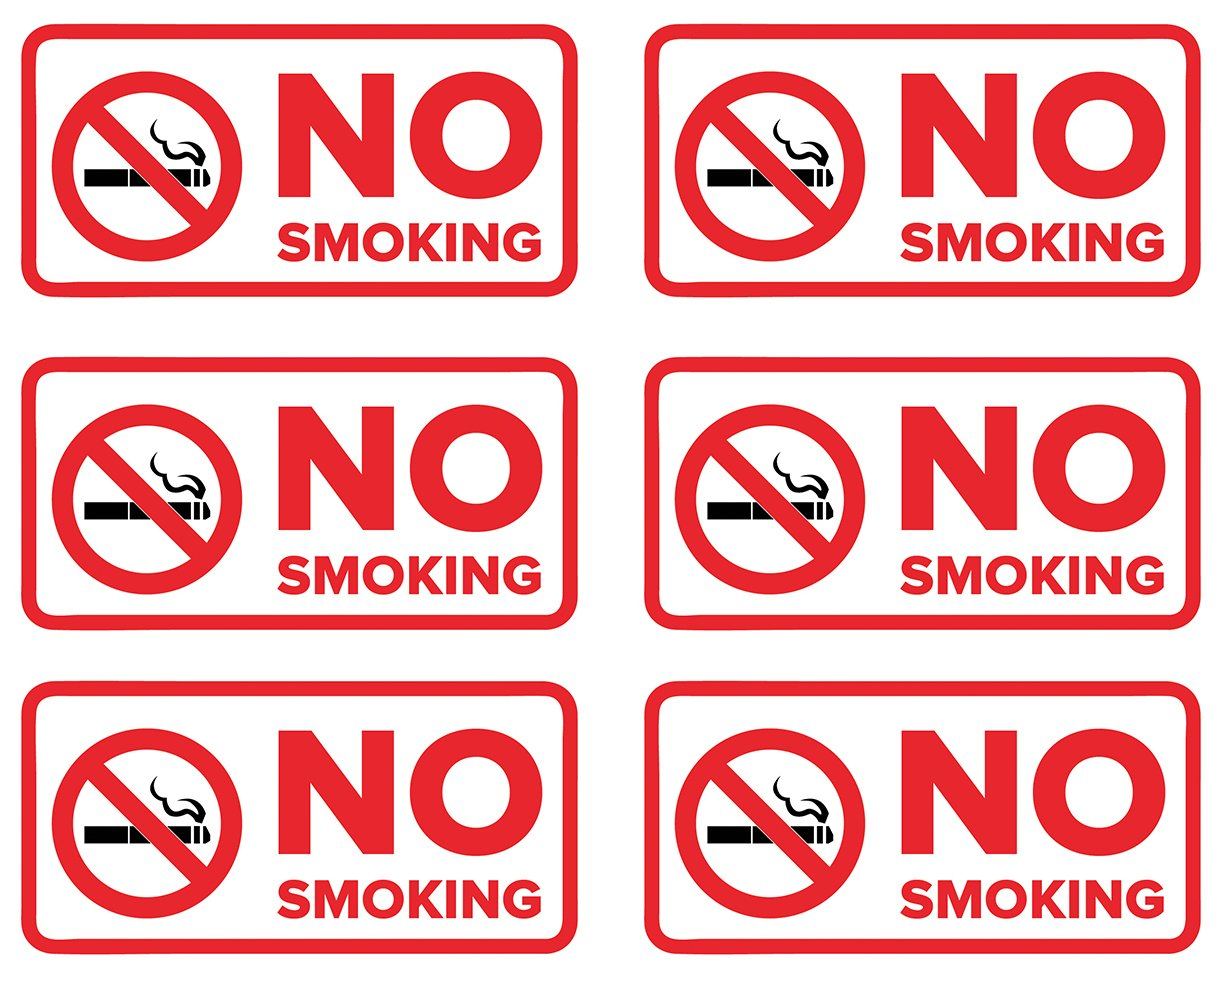 No Smoking Stickers   Decals for Indoor or Outdoor Use 4-inch by 2-inch (Pack of 6) Sutter Signs